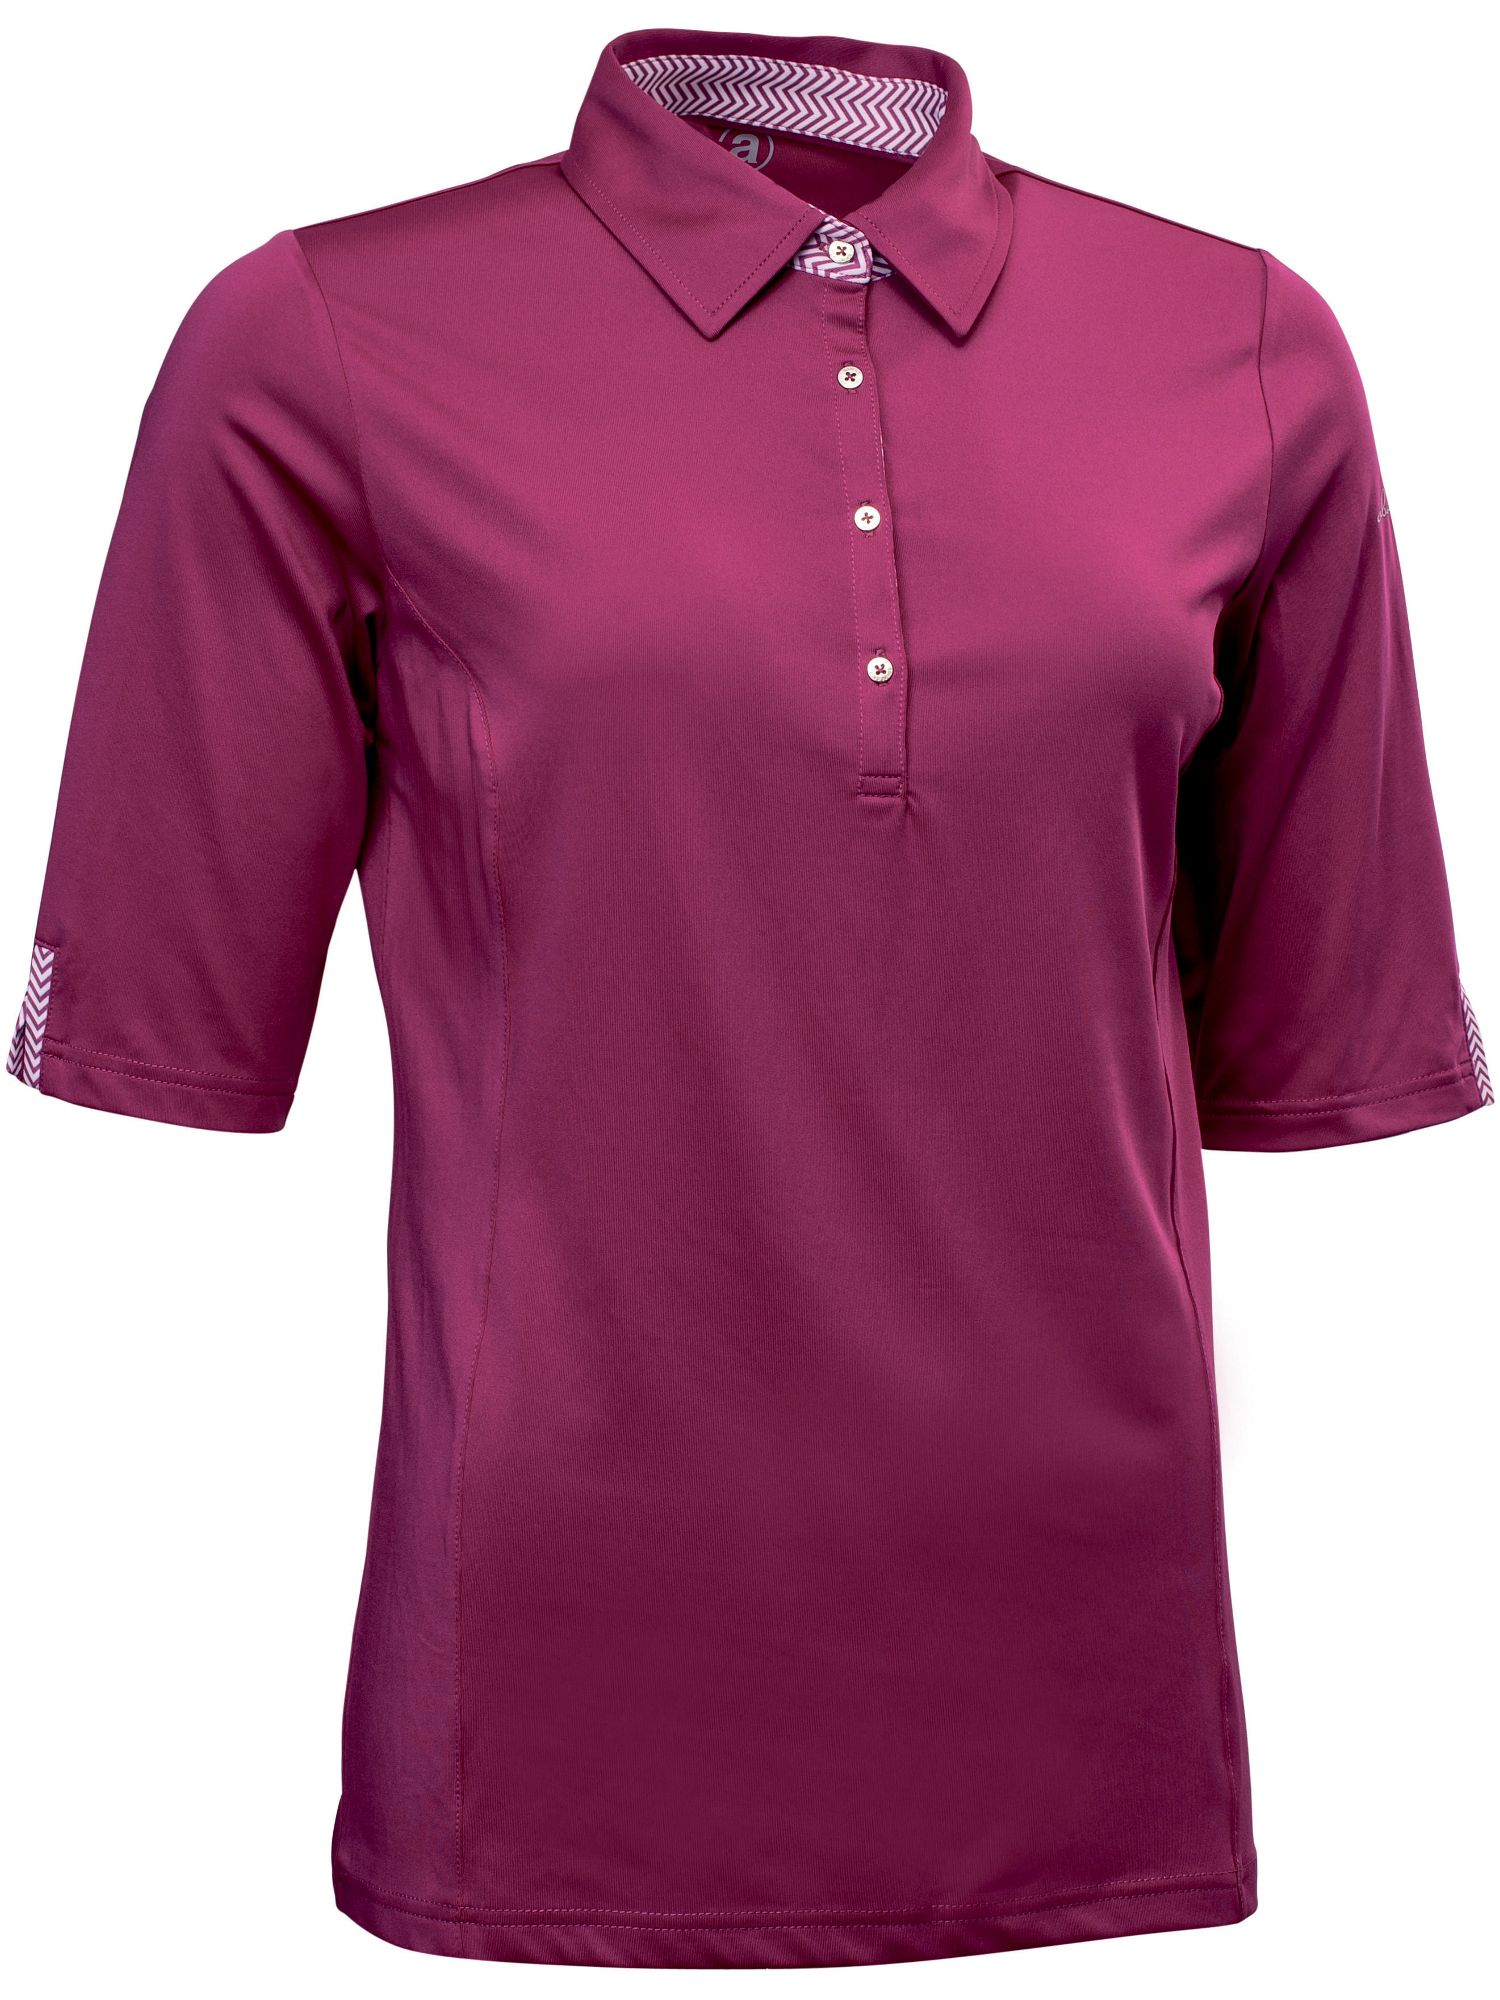 Abacus Karin 1/2 Sleeve Polo, Purple Review thumbnail